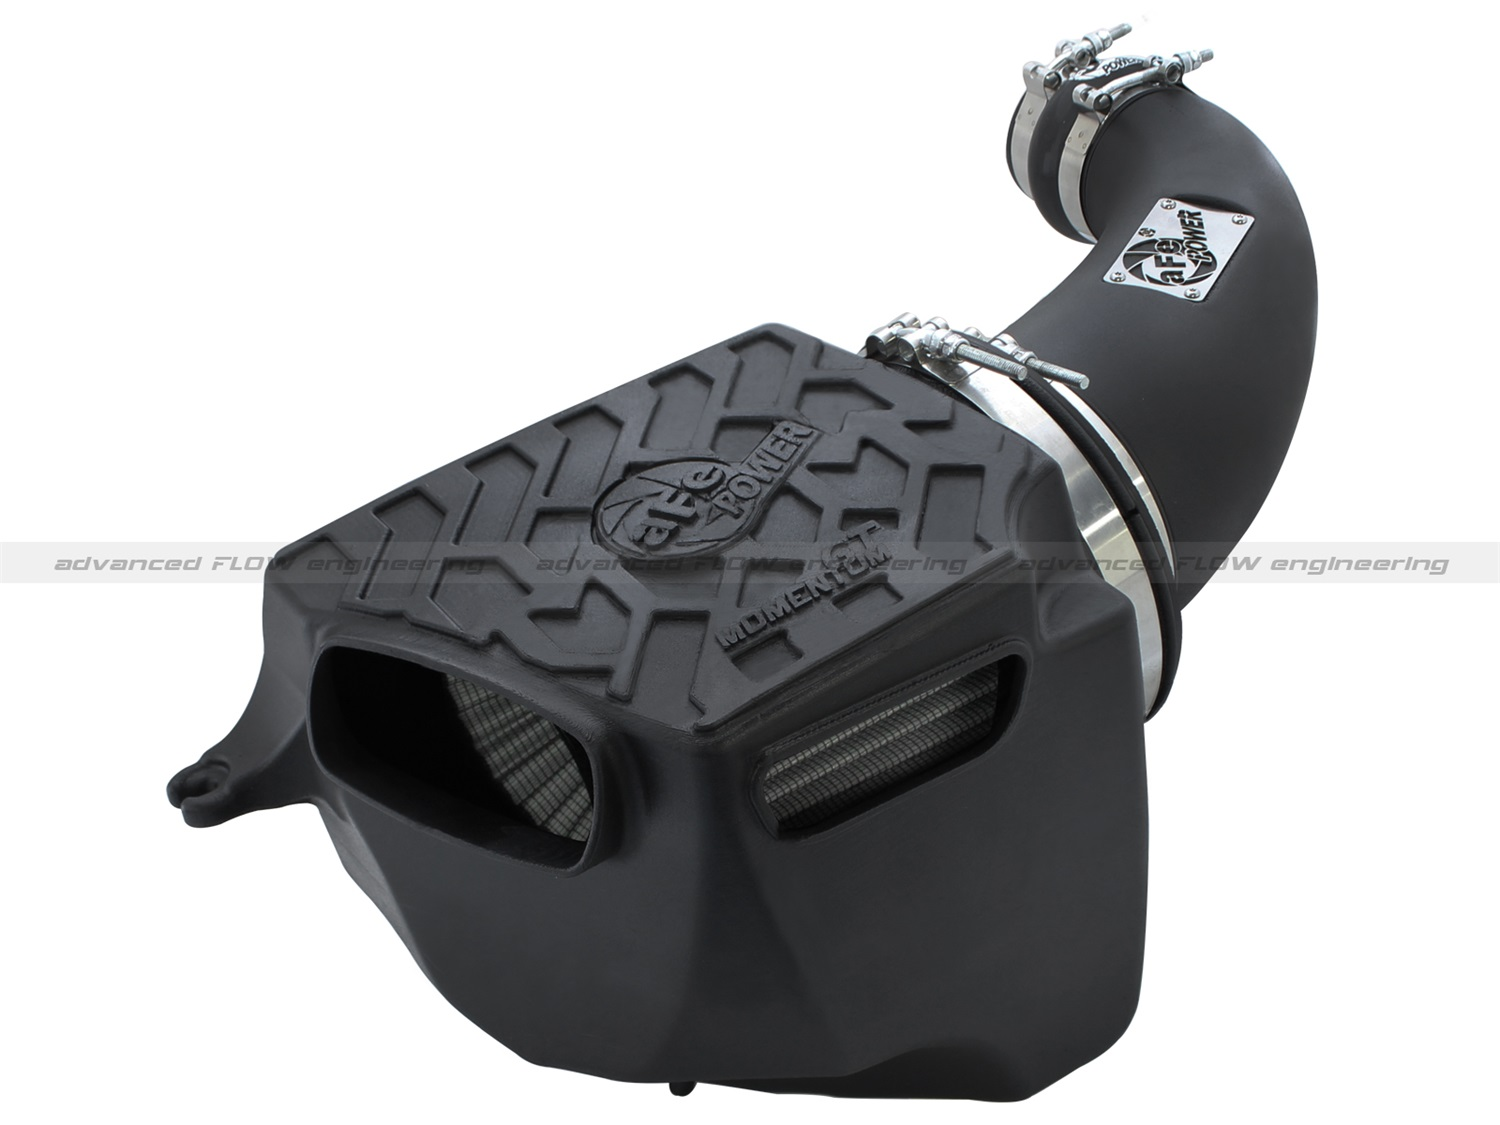 aFe Power 51-76203 Momentum GT Sealed Stage 2 Si PRO DRY S Intake System 51-76203